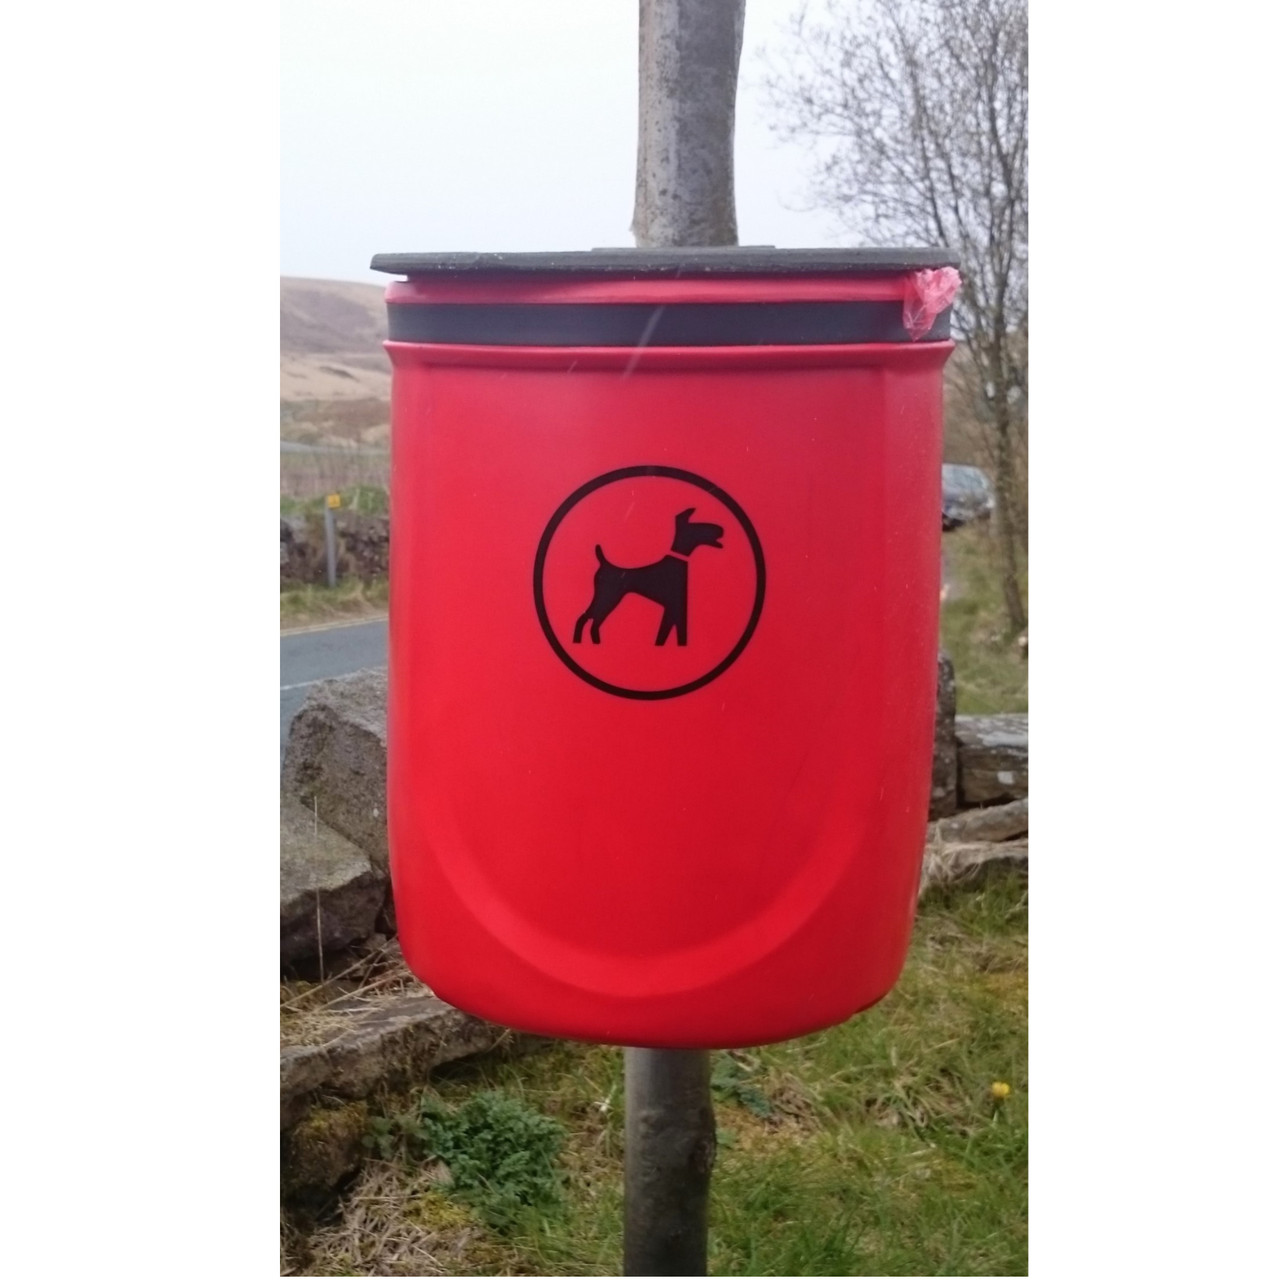 Doggy waste bin on steel post